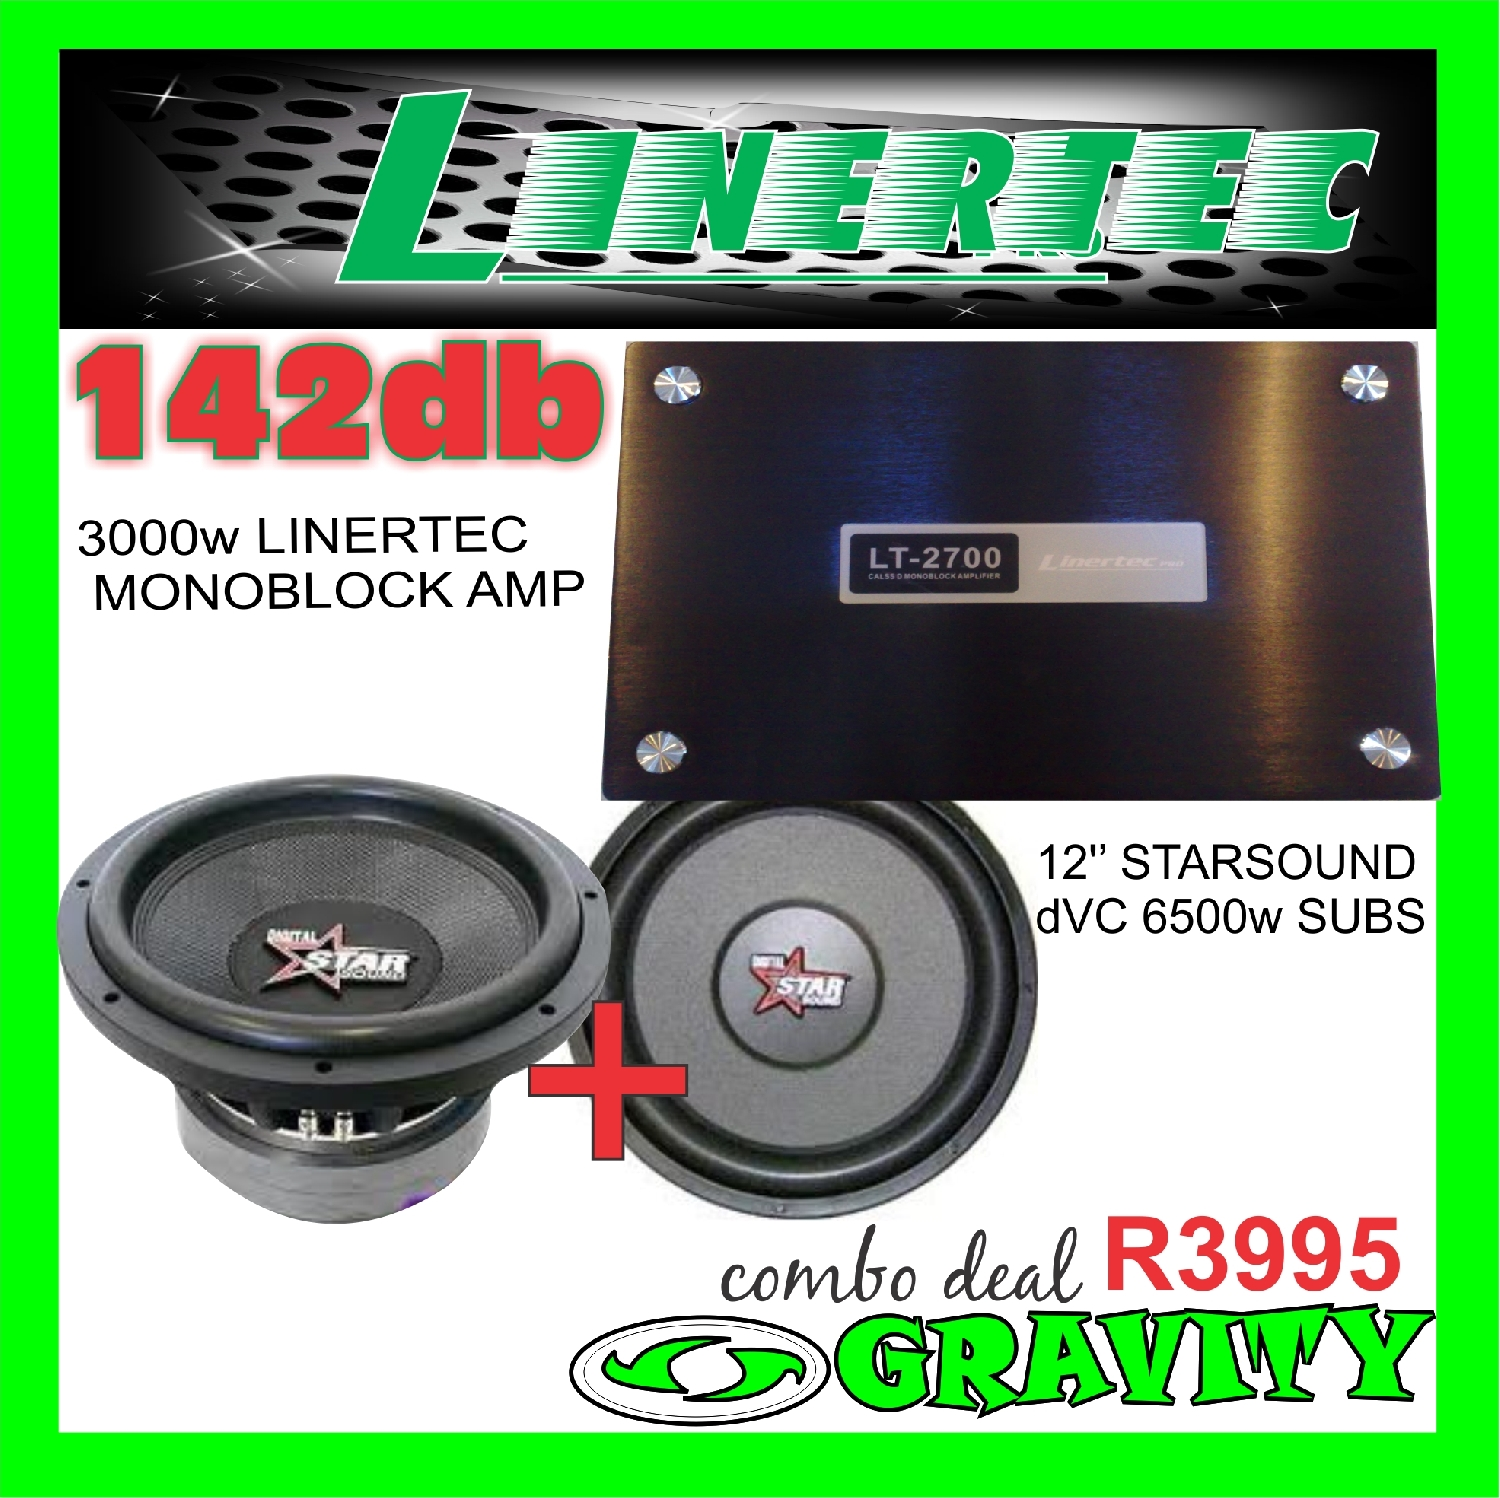 starsound audio sound combo set linertec monoblock amp starsound dvc street subwoofers gravity audio 0315072463 spectrum dvc subs